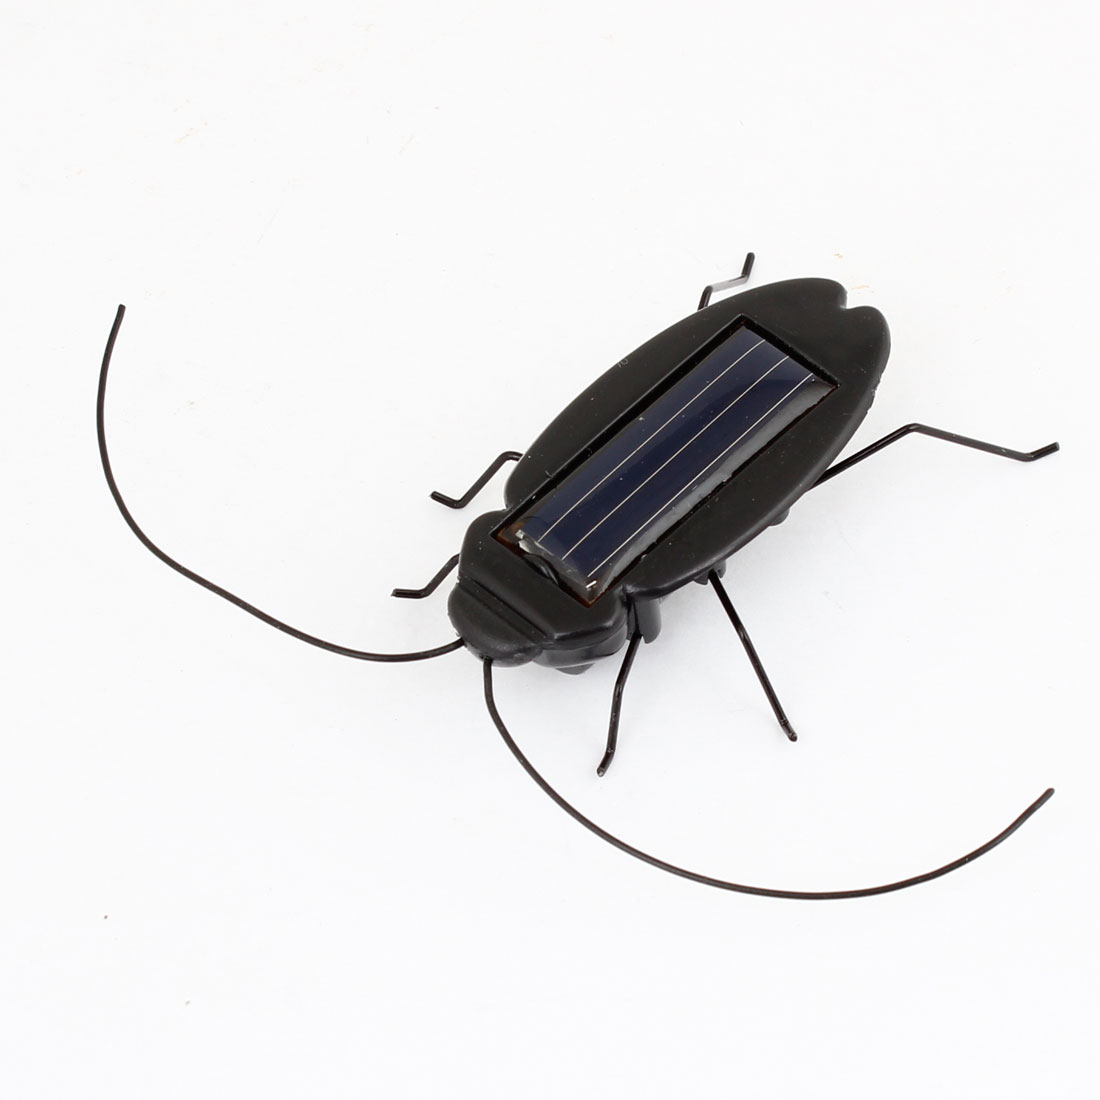 Office School Solar Energy Powered Cockroach Design Gadget Toy for Children